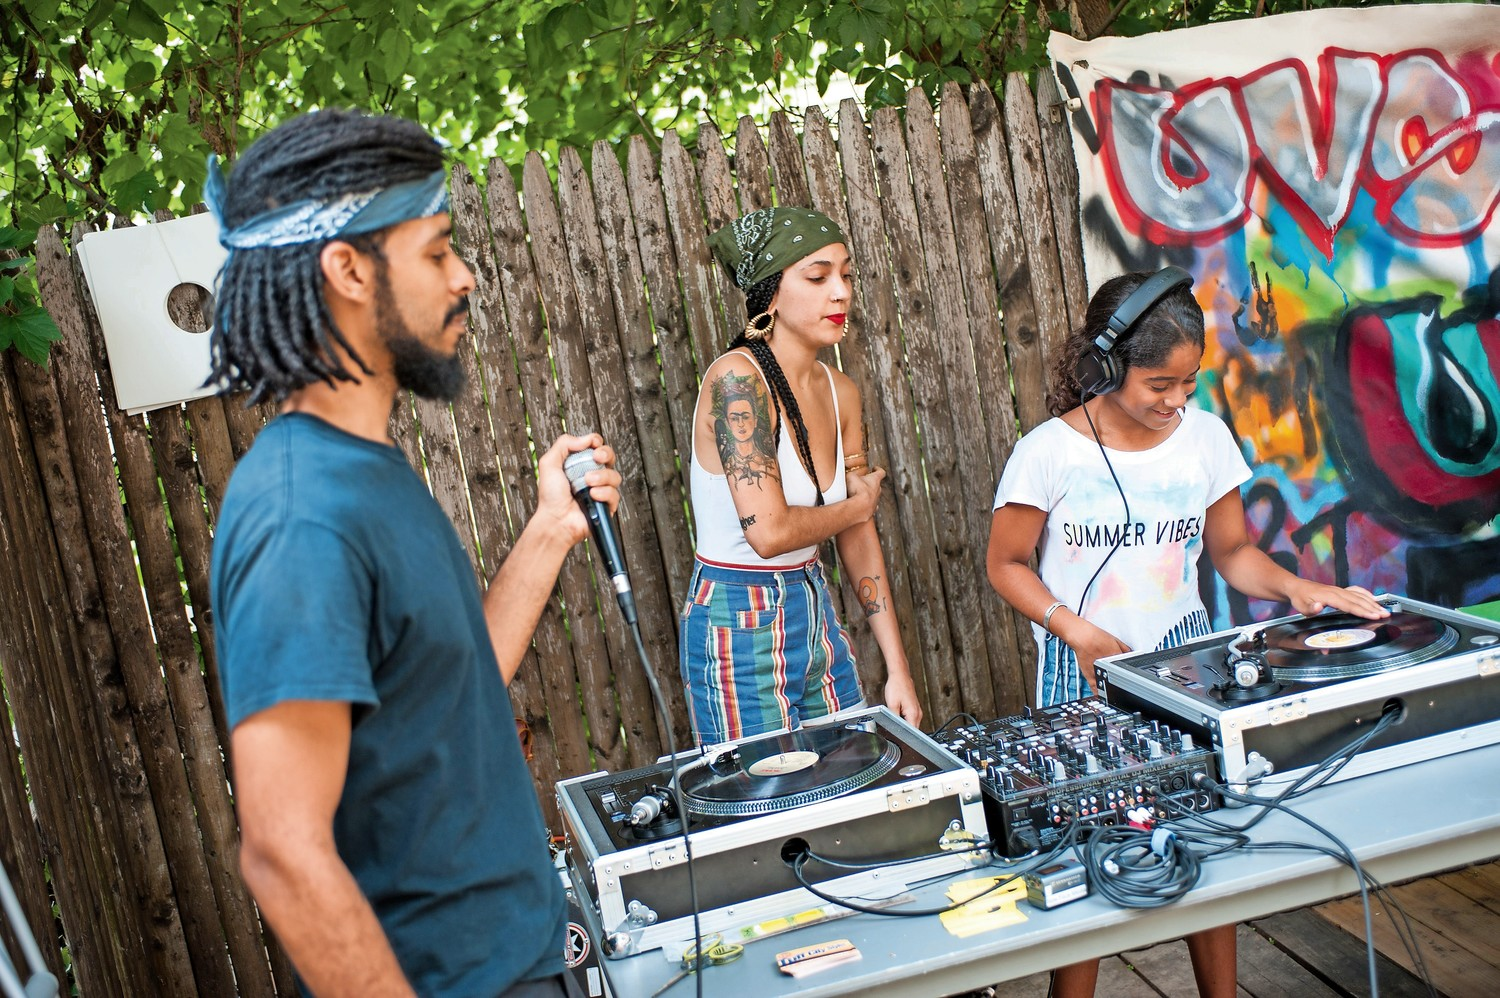 Arleen 'DJ A-Aron' Ramos, takes a turn and spins and scratches on the turntables at the summer jam on the last day of Hip-Hop Summer School at the Kingsbridge Heights Community Center. She is one of the students who took in the summer course, learning more about the art form.